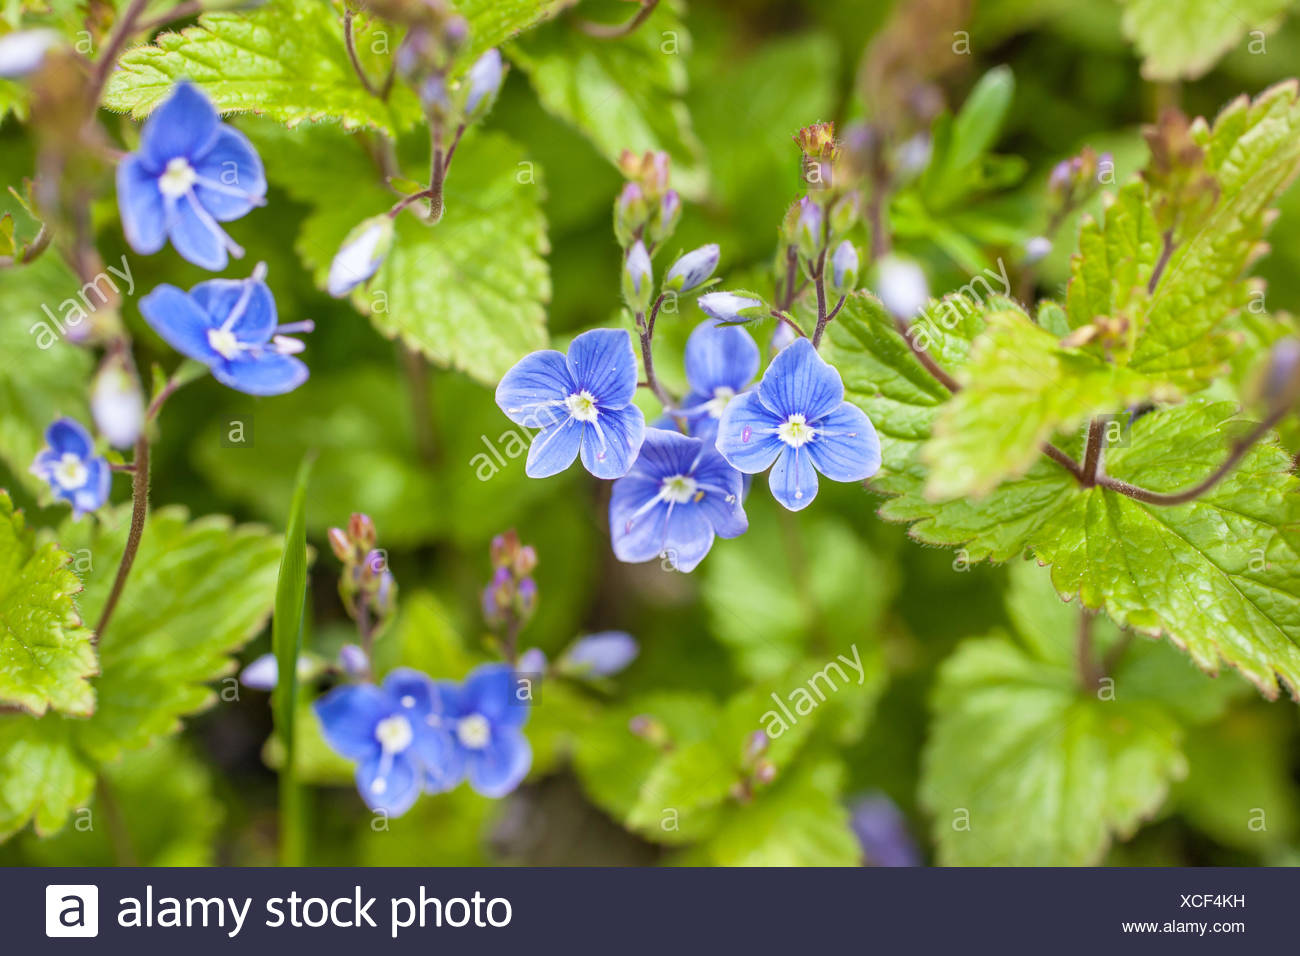 botany, prize (Veronica's Closet) in the mountains in South Tyrol, Italy, Additional-Rights-Clearance-Info-Not-Available - Stock Image